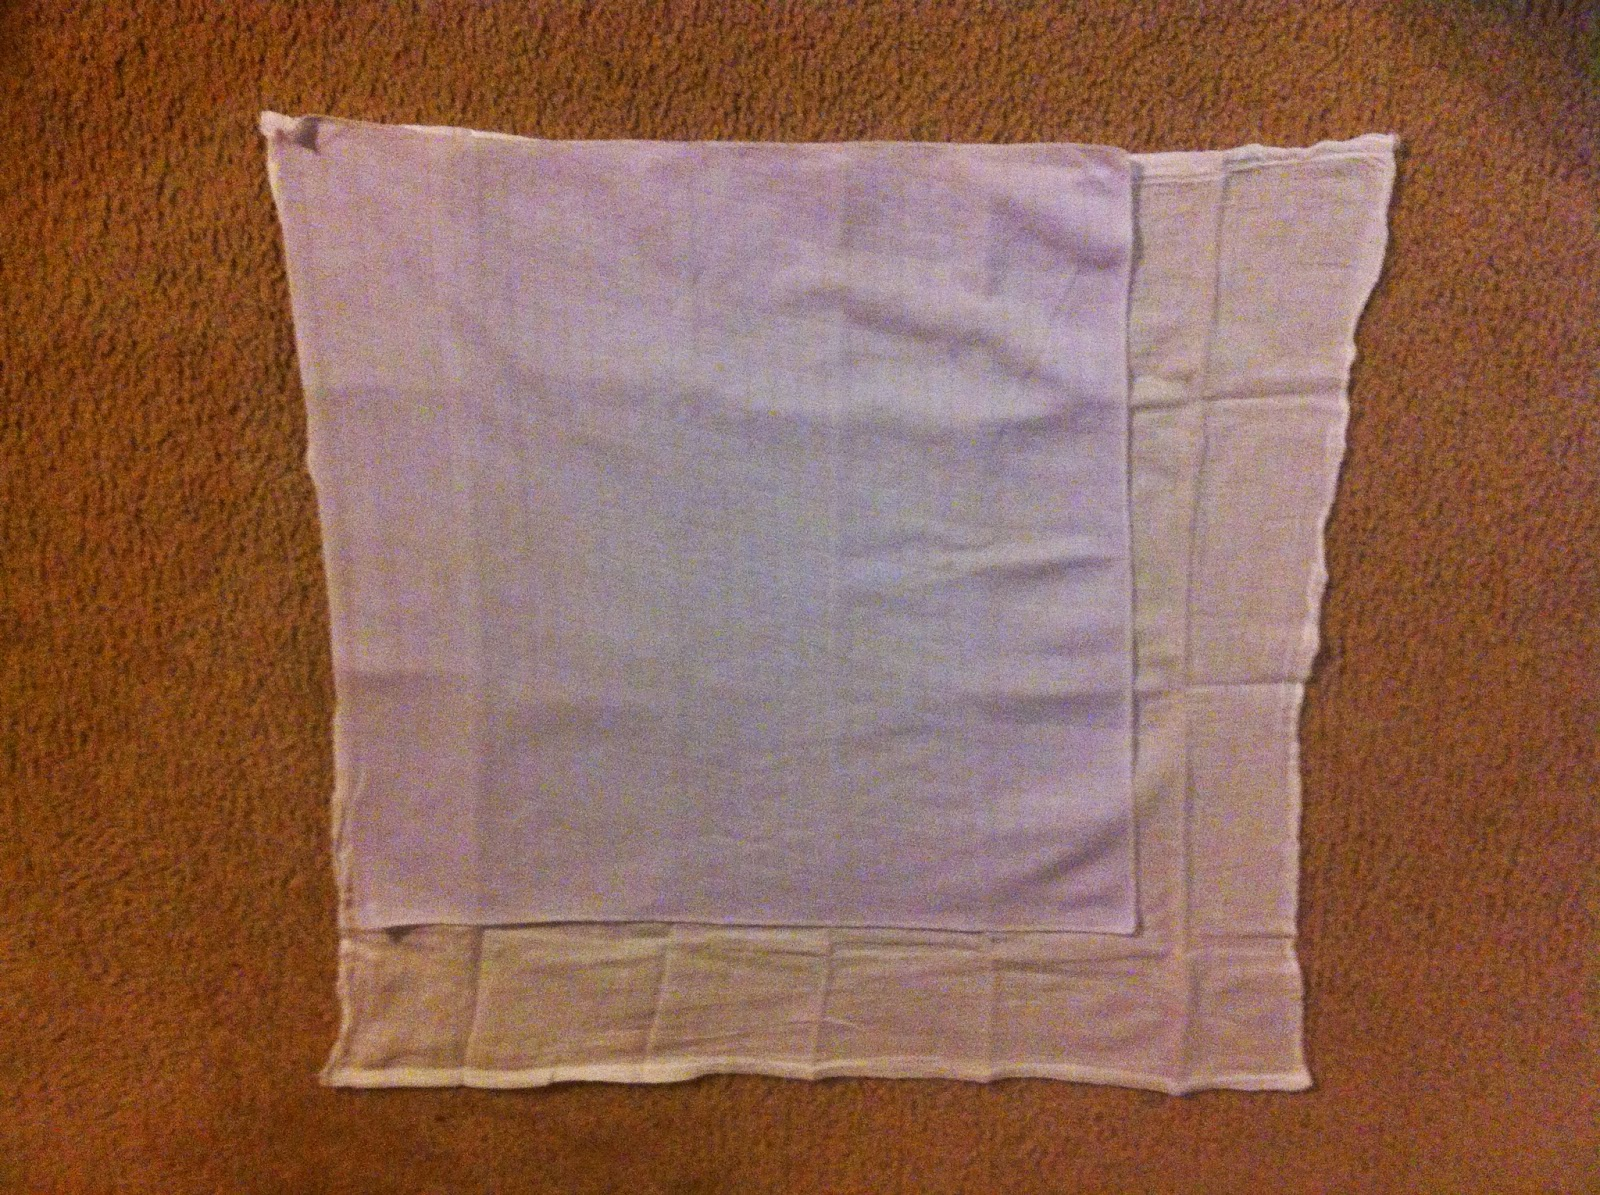 One Crunchy Square: Flour Sack Towels (FST) as Cloth Diapers